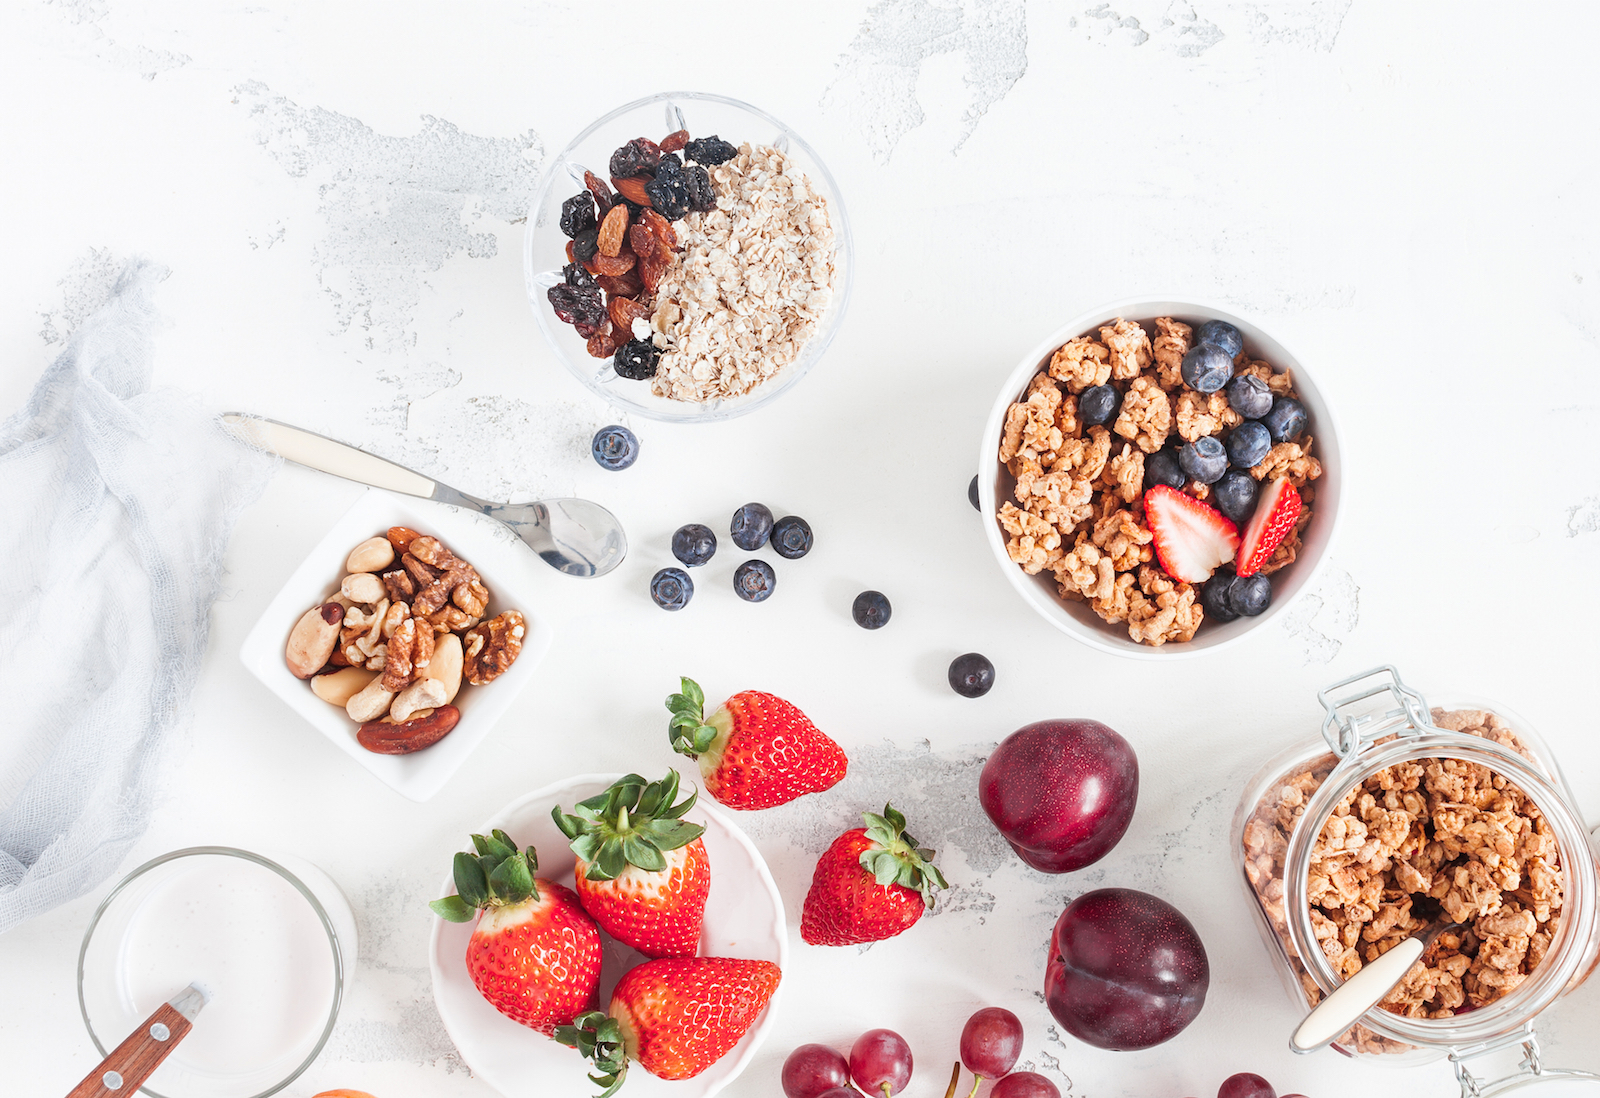 The 10-Minute Healthy Breakfast Recipes That Will Change Your Mornings